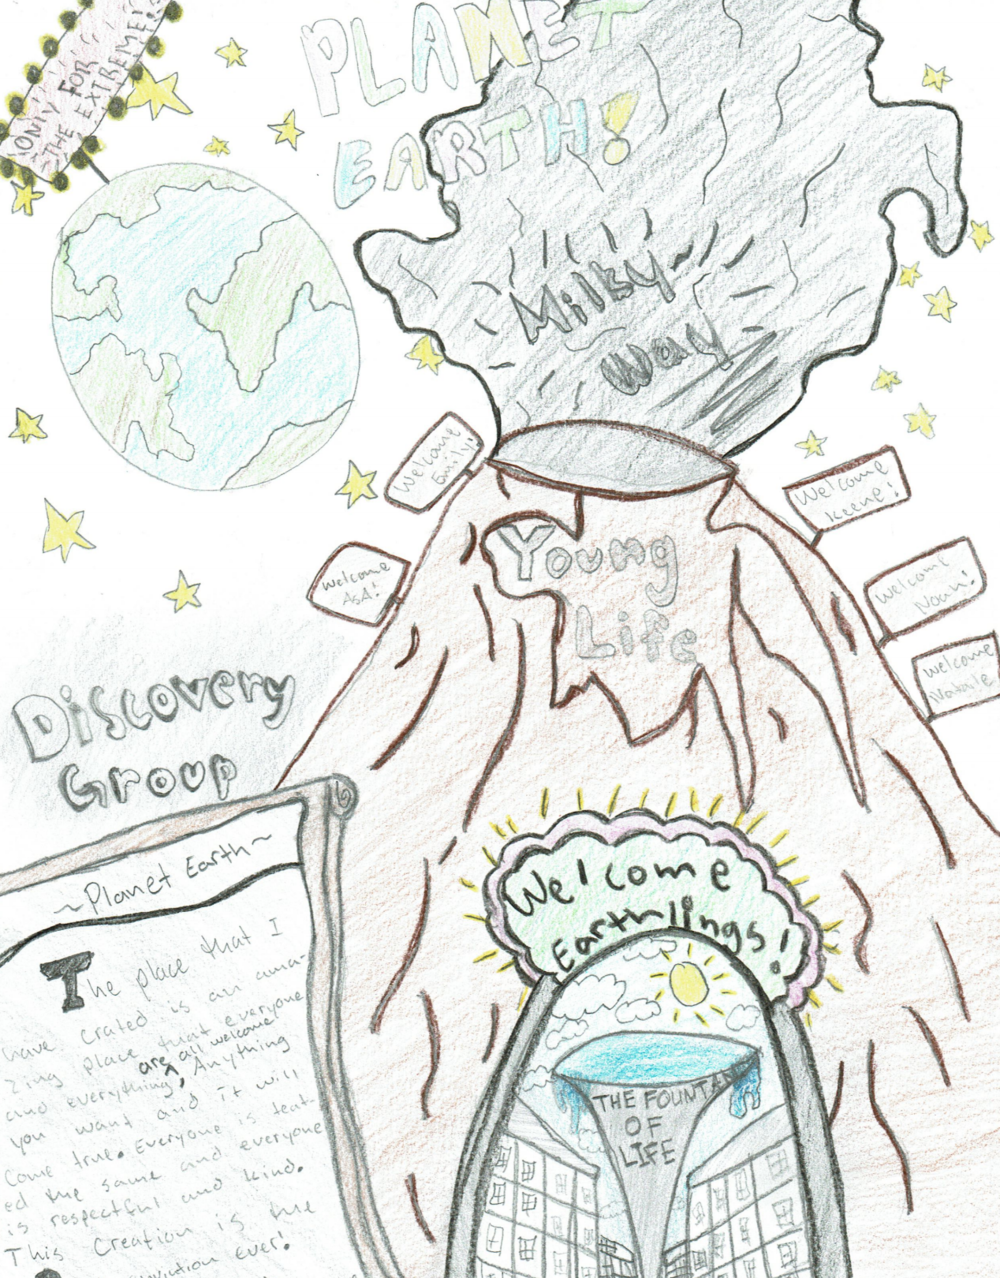 Artistic rendering of utopia by a Discovery Group participant.